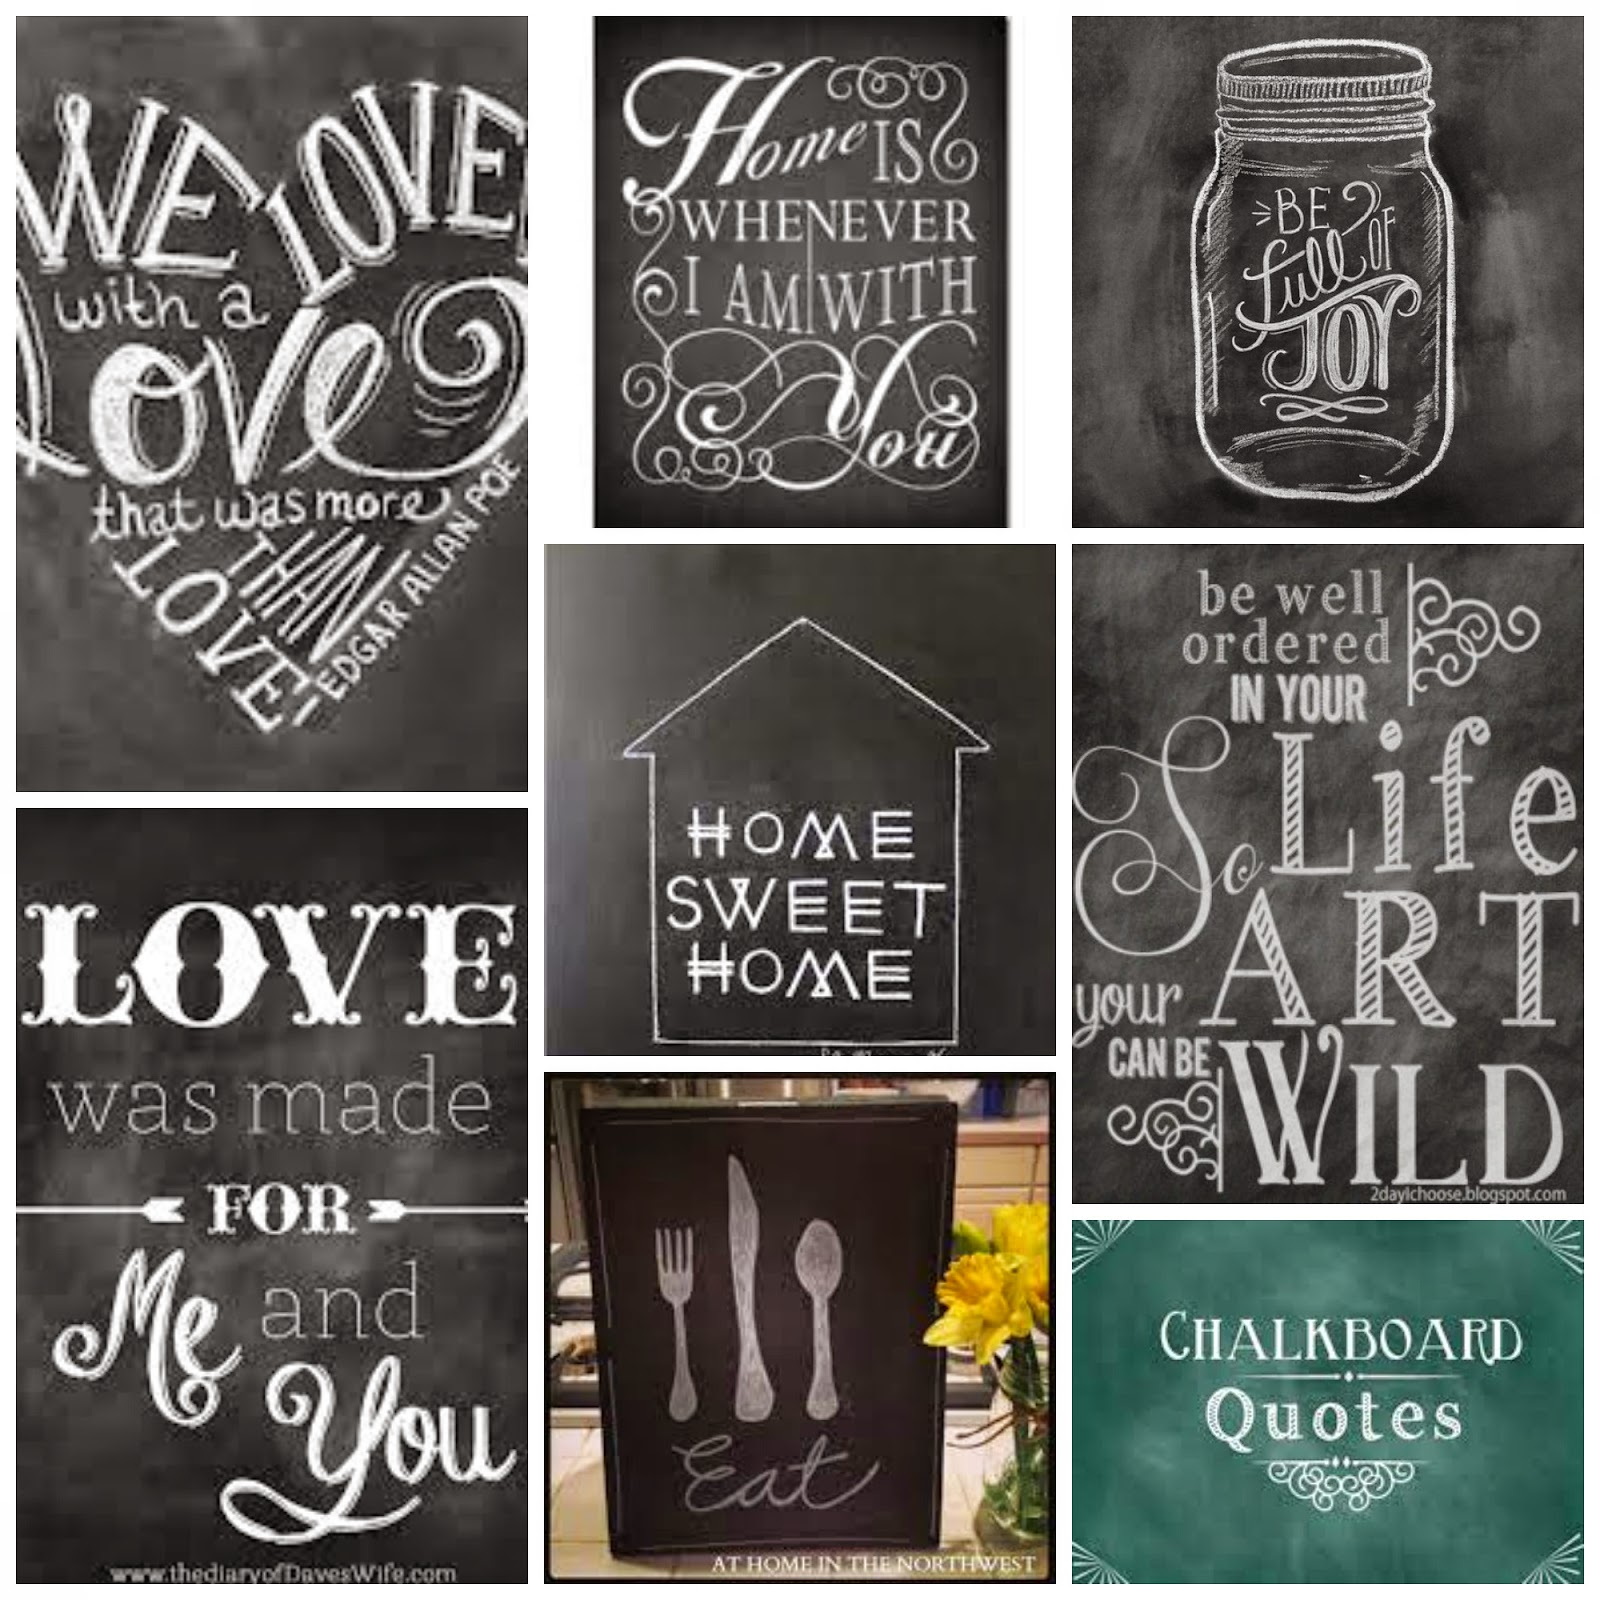 Western Warmth Chalkboard Art Ideas